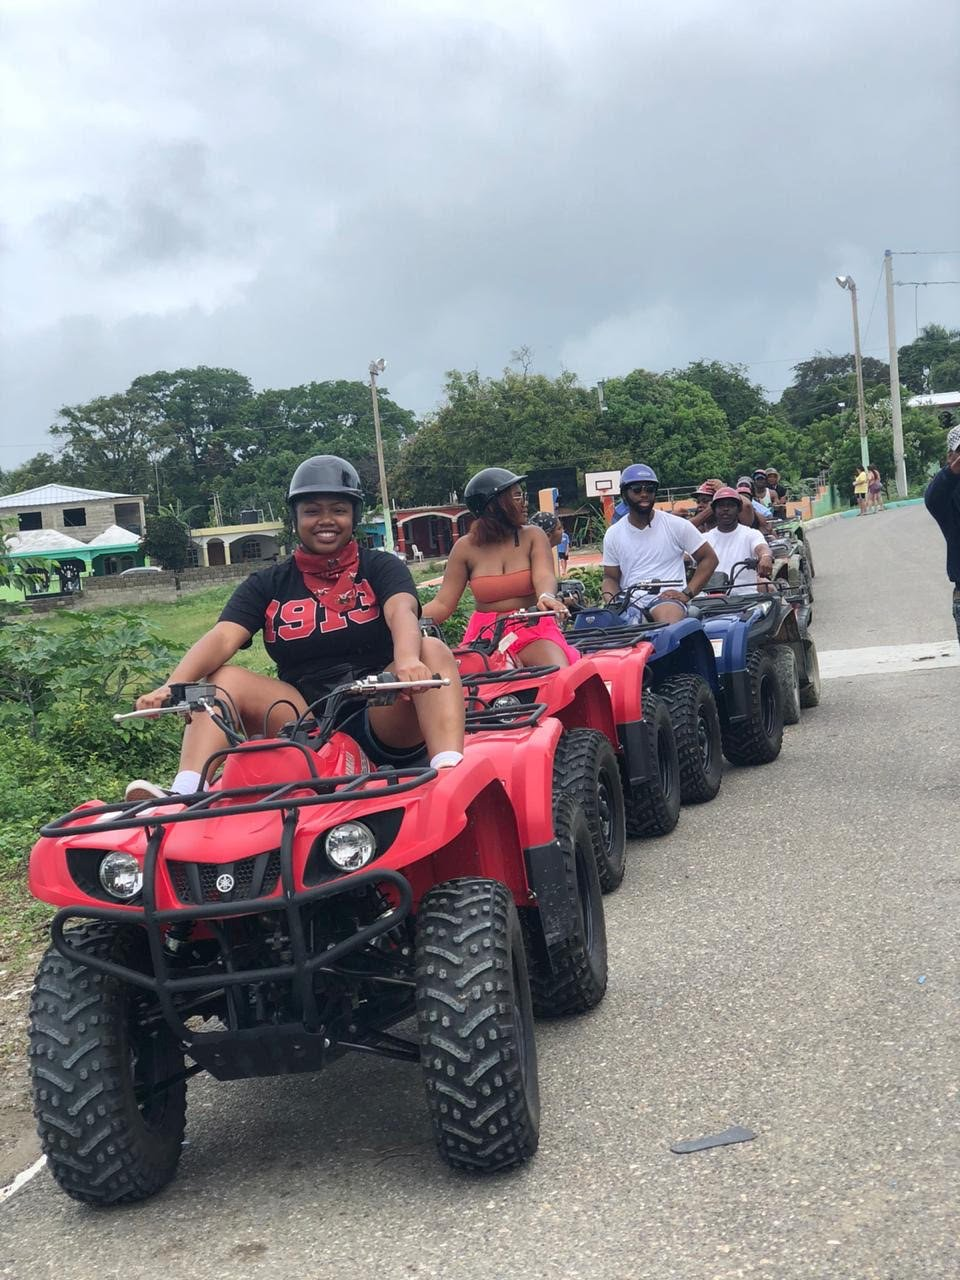 Atv Four Wheeler Tour - Puerto Plata, Dominican Republic- La | Image #8/8 | Dominican Republic Tour and Transportation Service